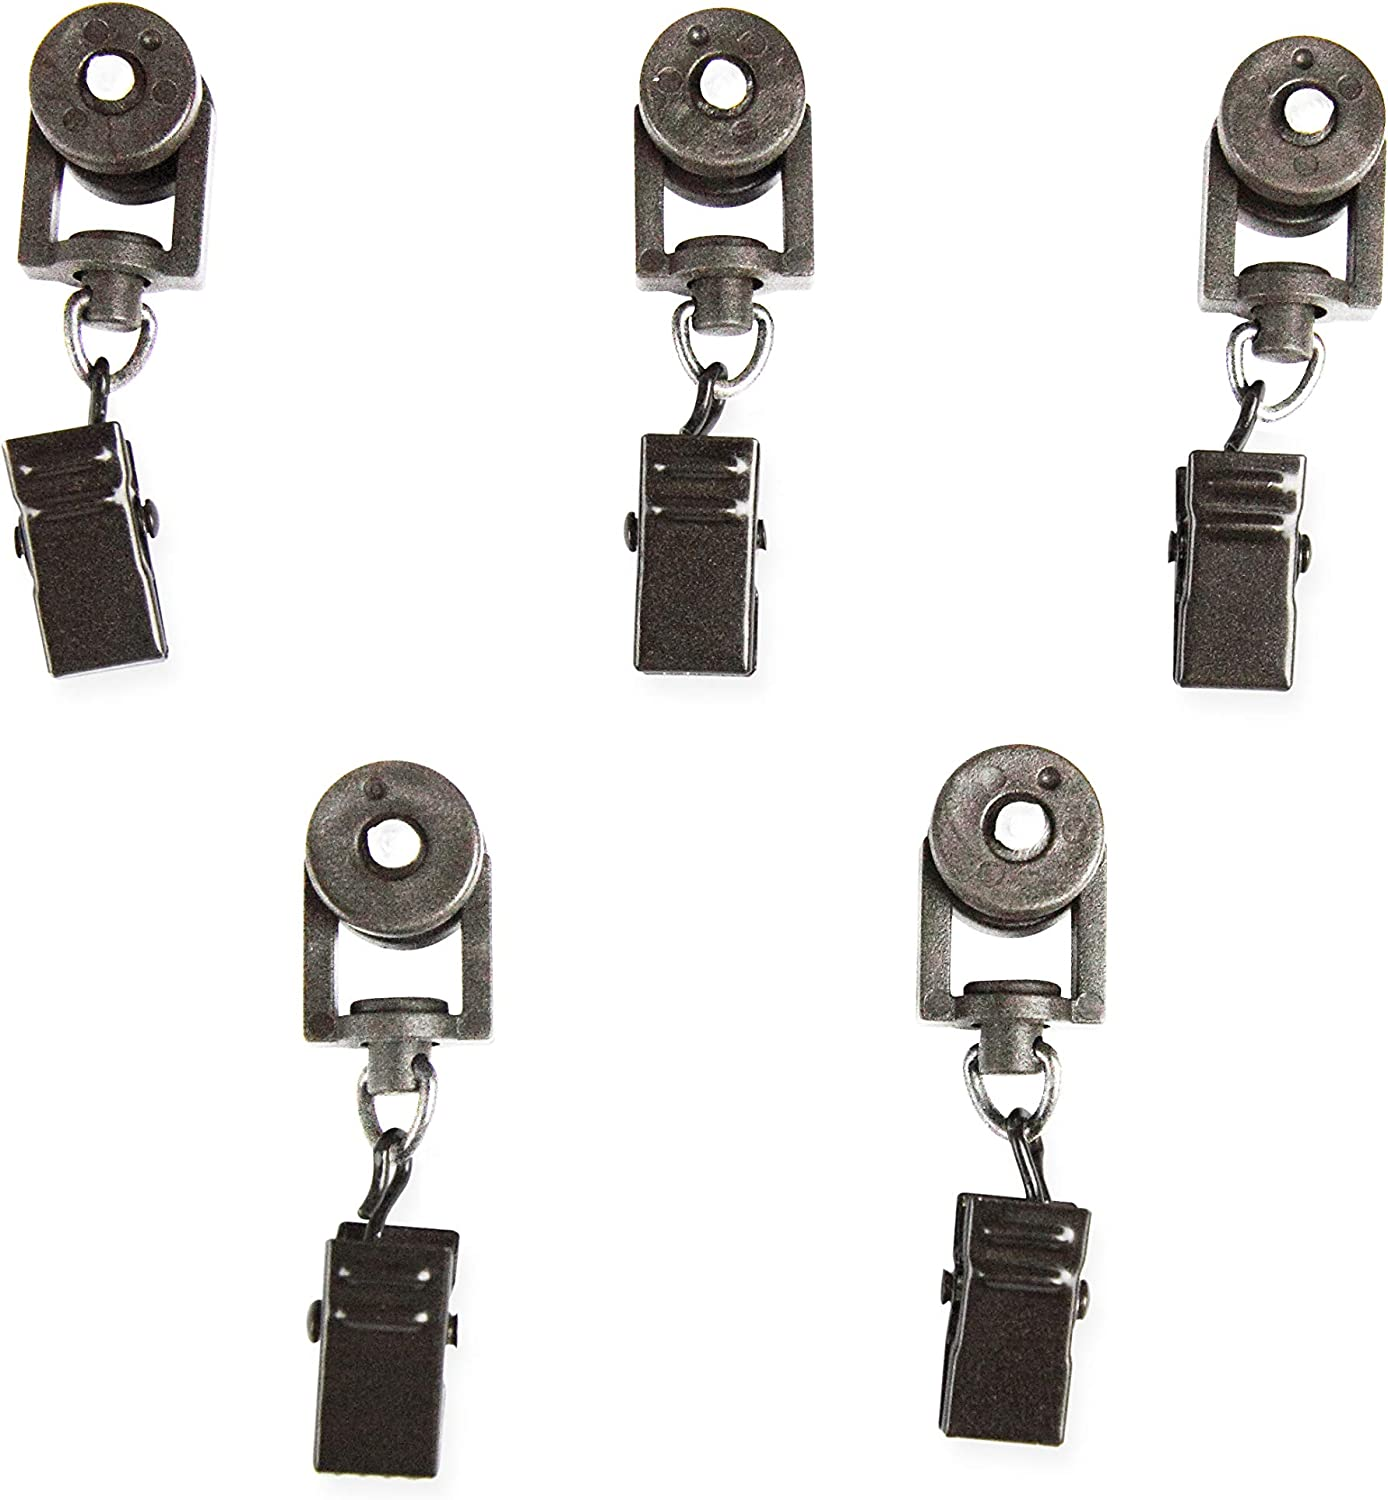 Rod Desyne 10 Sliders for CH Track Traverse Rods, Pewter